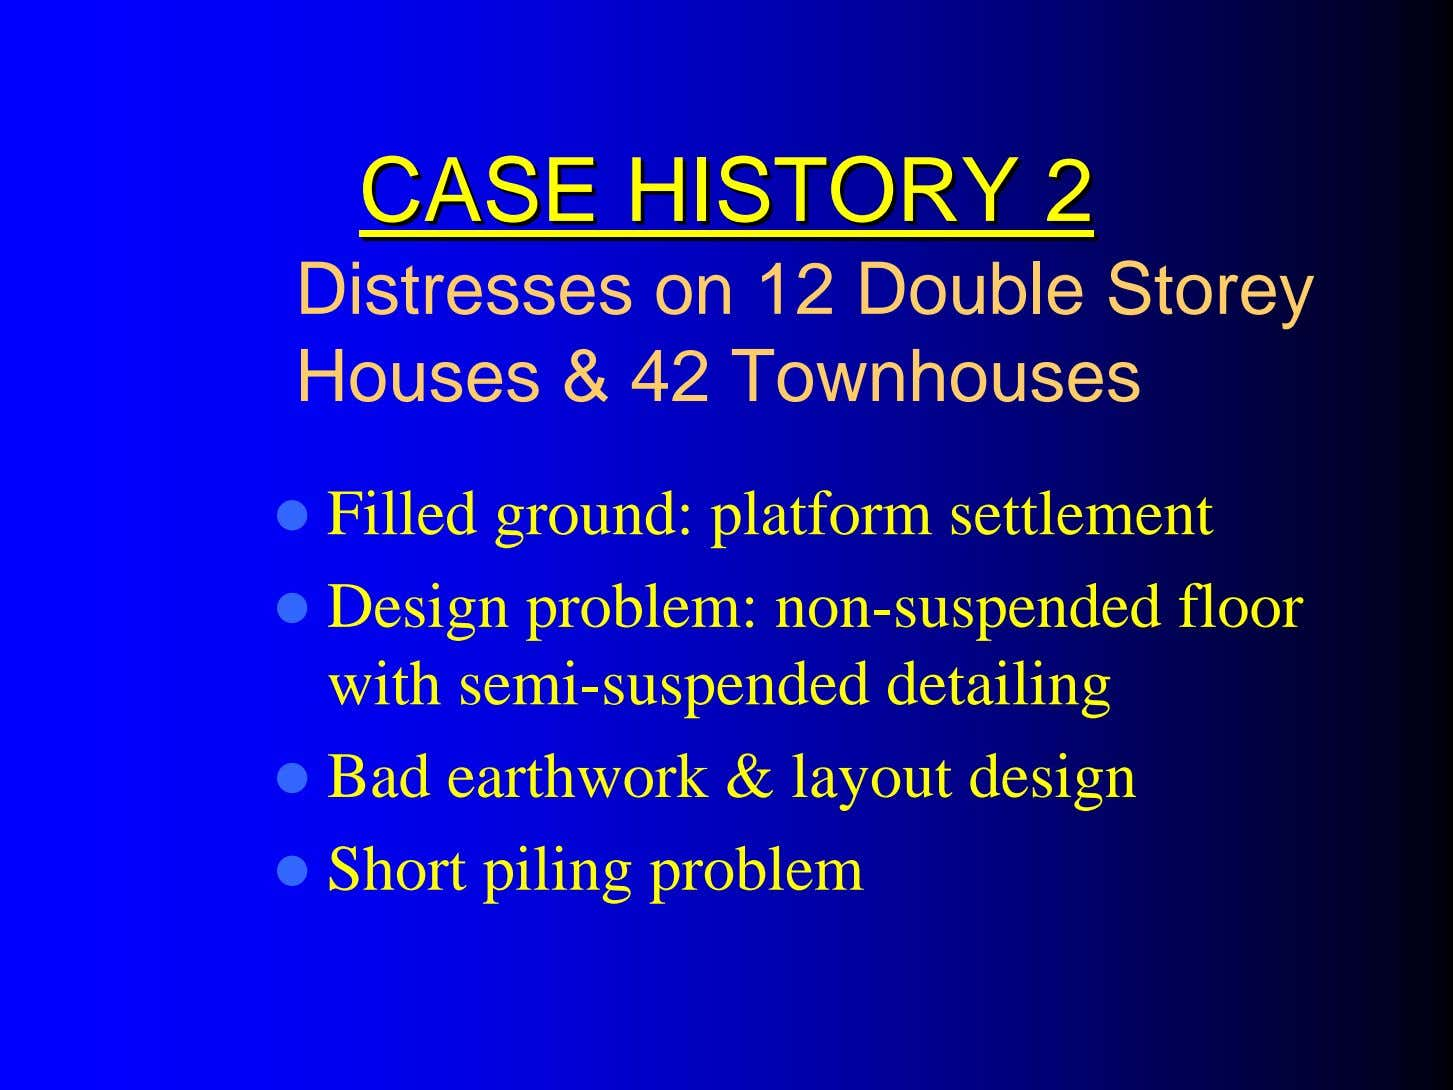 CASECASE HISTORYHISTORY 22 Distresses on 12 Double Storey Houses & 42 Townhouses Filled ground: platform